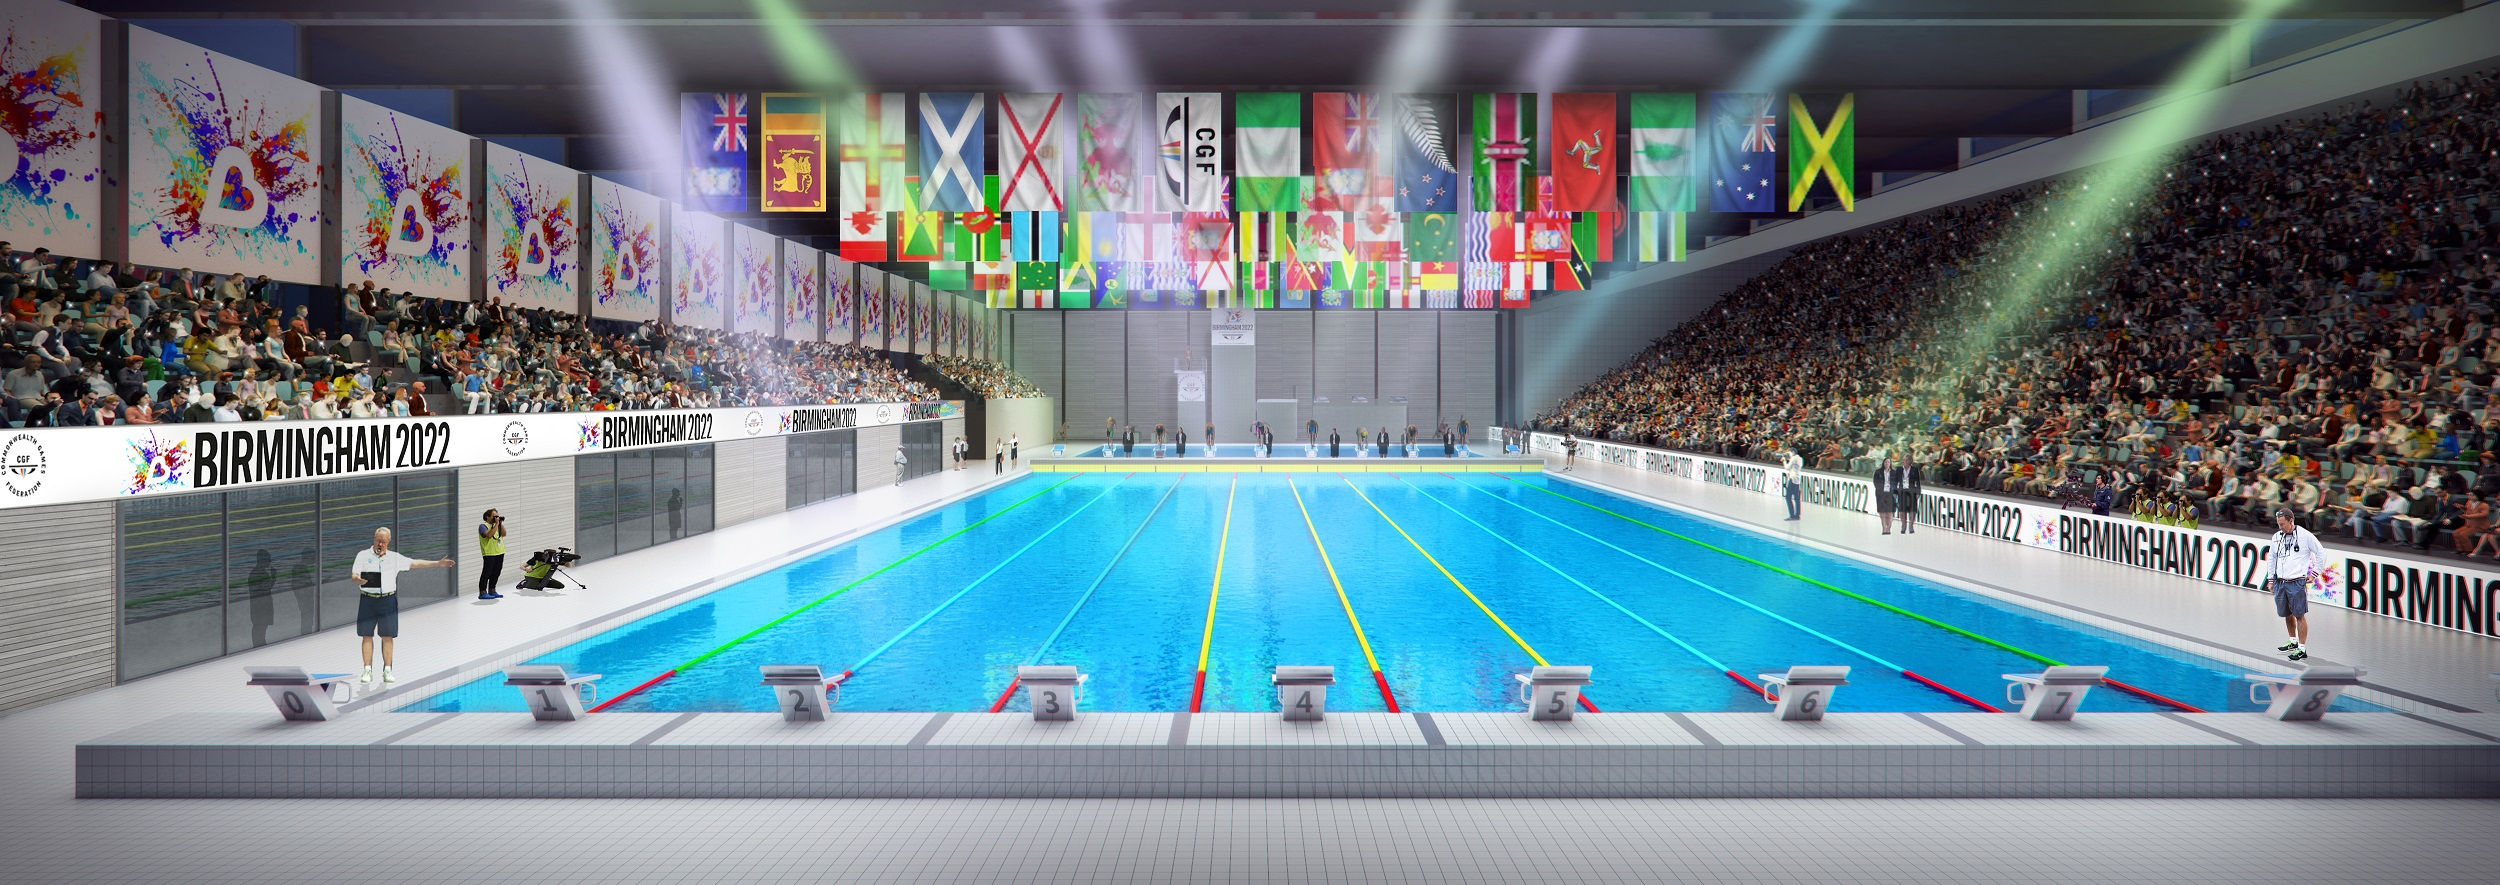 New Sandwell Aquatics Centre to become home of Swimming and Diving for 2022 Commonwealth Games bid